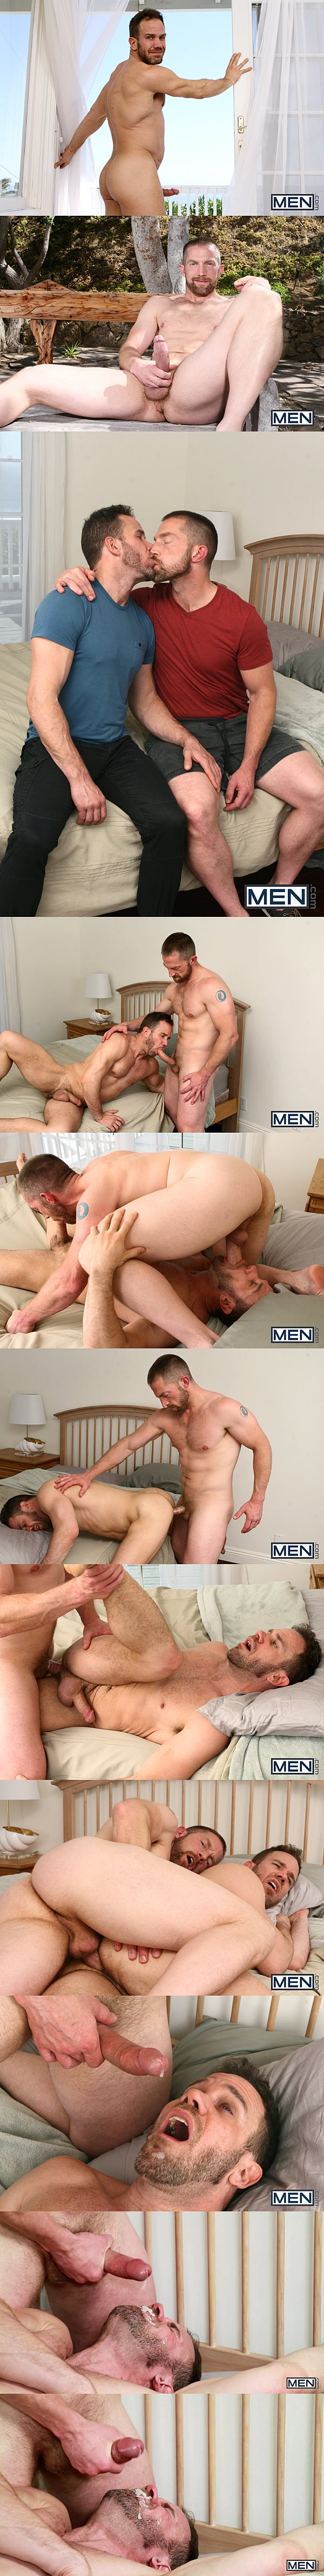 Adam Herst fucks hot macho daddy Ryan Wilcox's tight ass before he gives Ryan a big facial in Son Swap Part 4 at Drillmyhole 02